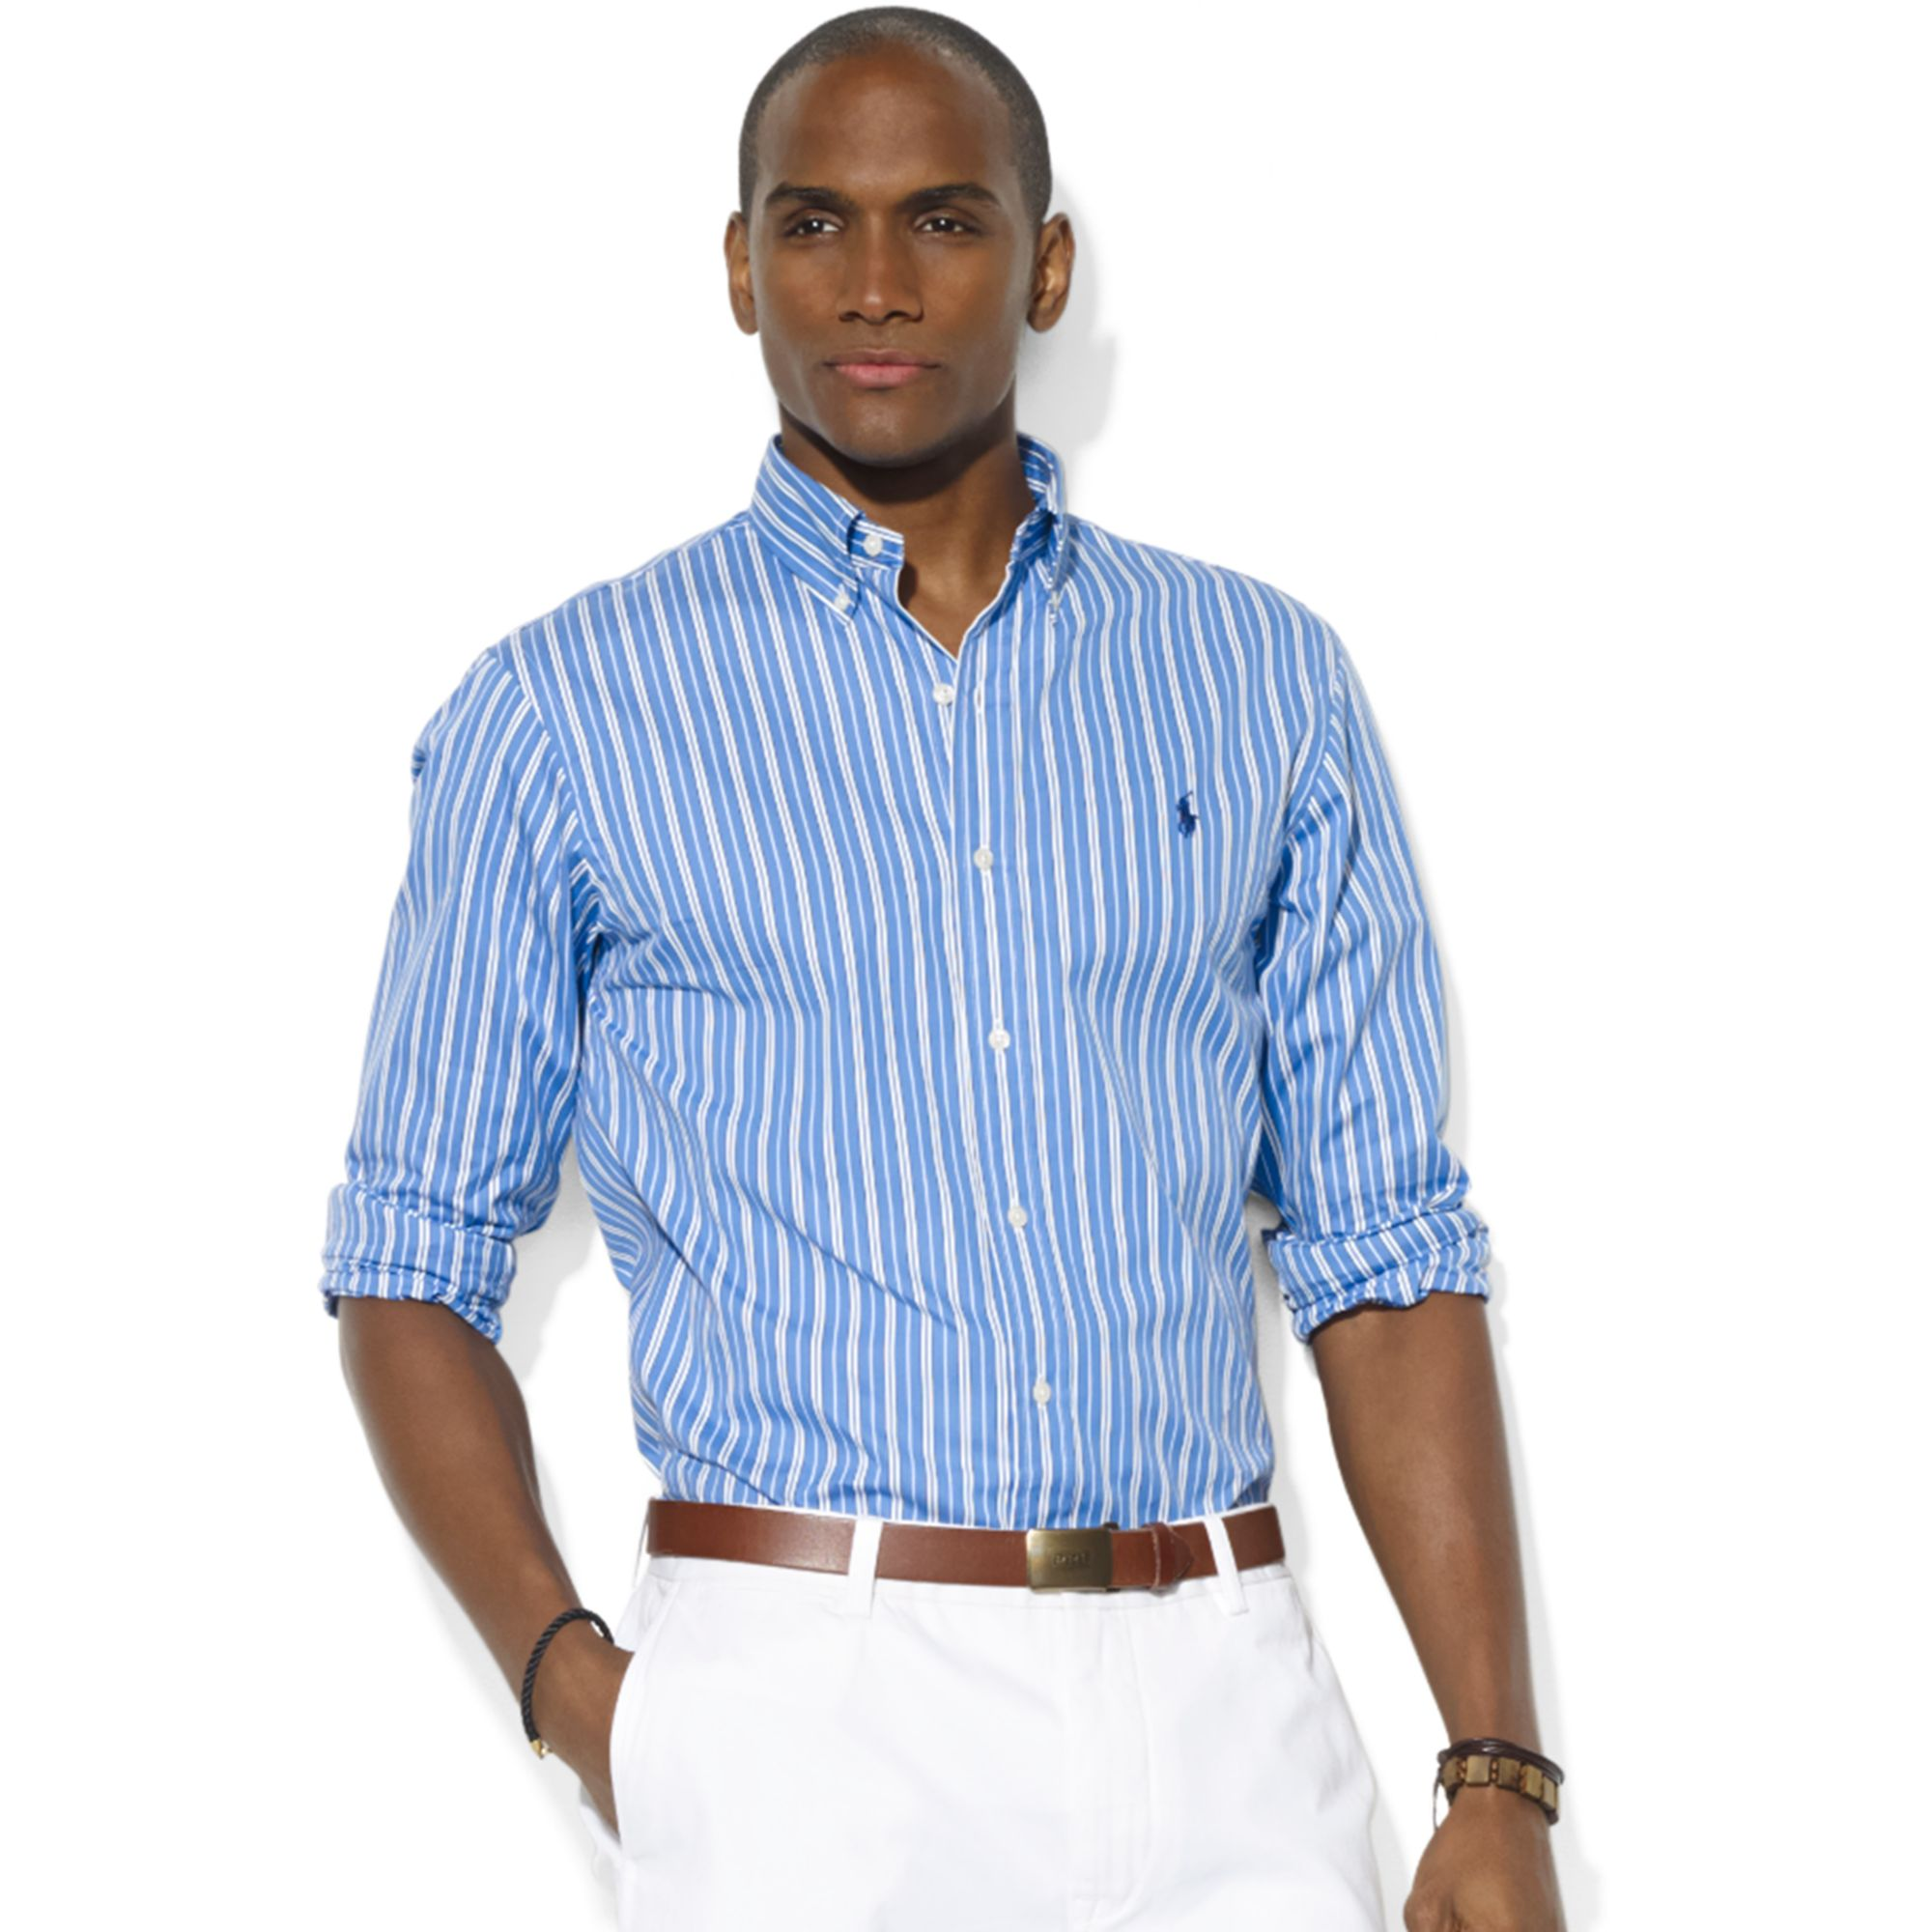 552f56d74 Polo Ralph Lauren Mens Linen Striped Shirt